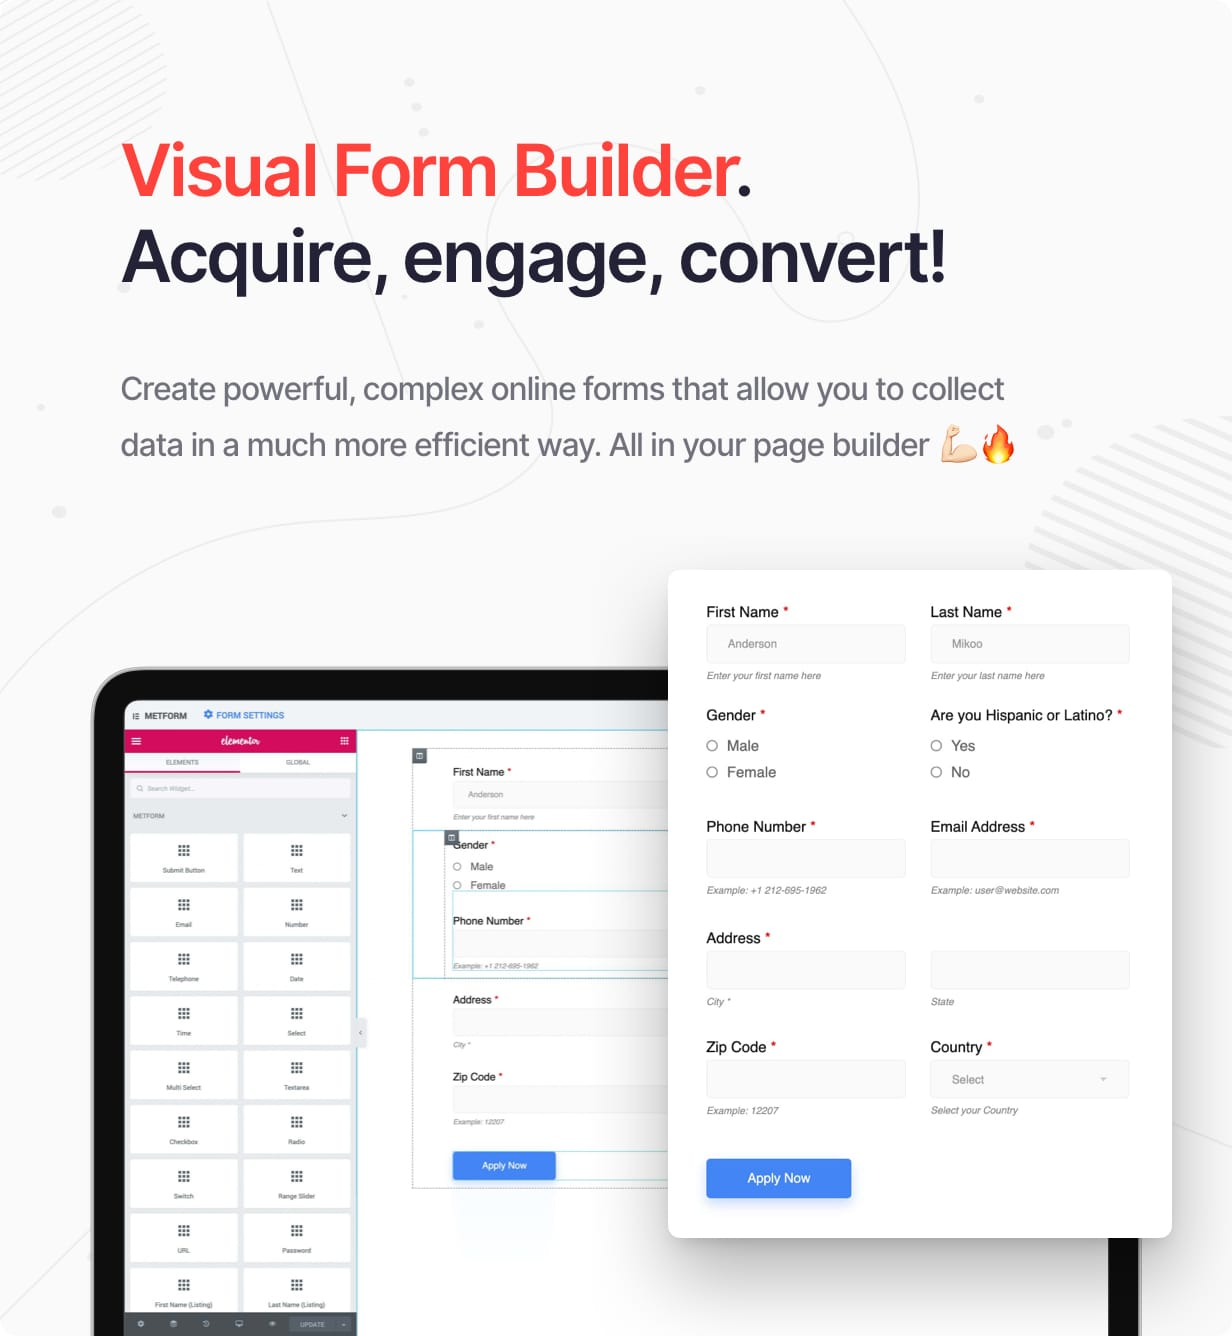 Visual Form Builder. Acquire, engage, convert!